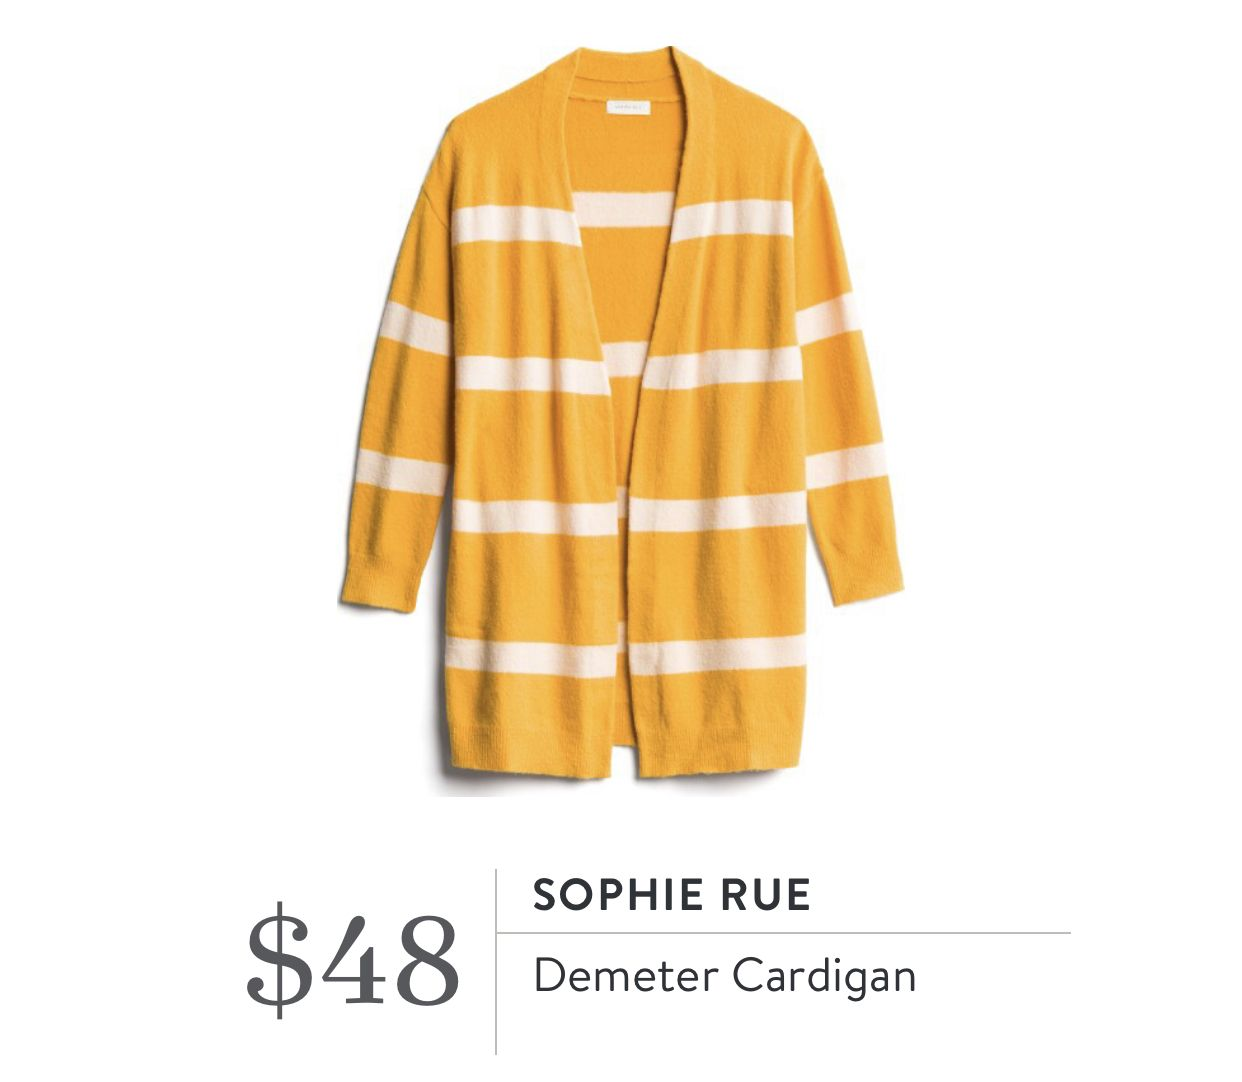 Sophie Rue Demeter cardigan from Stitch Fix | Clothes